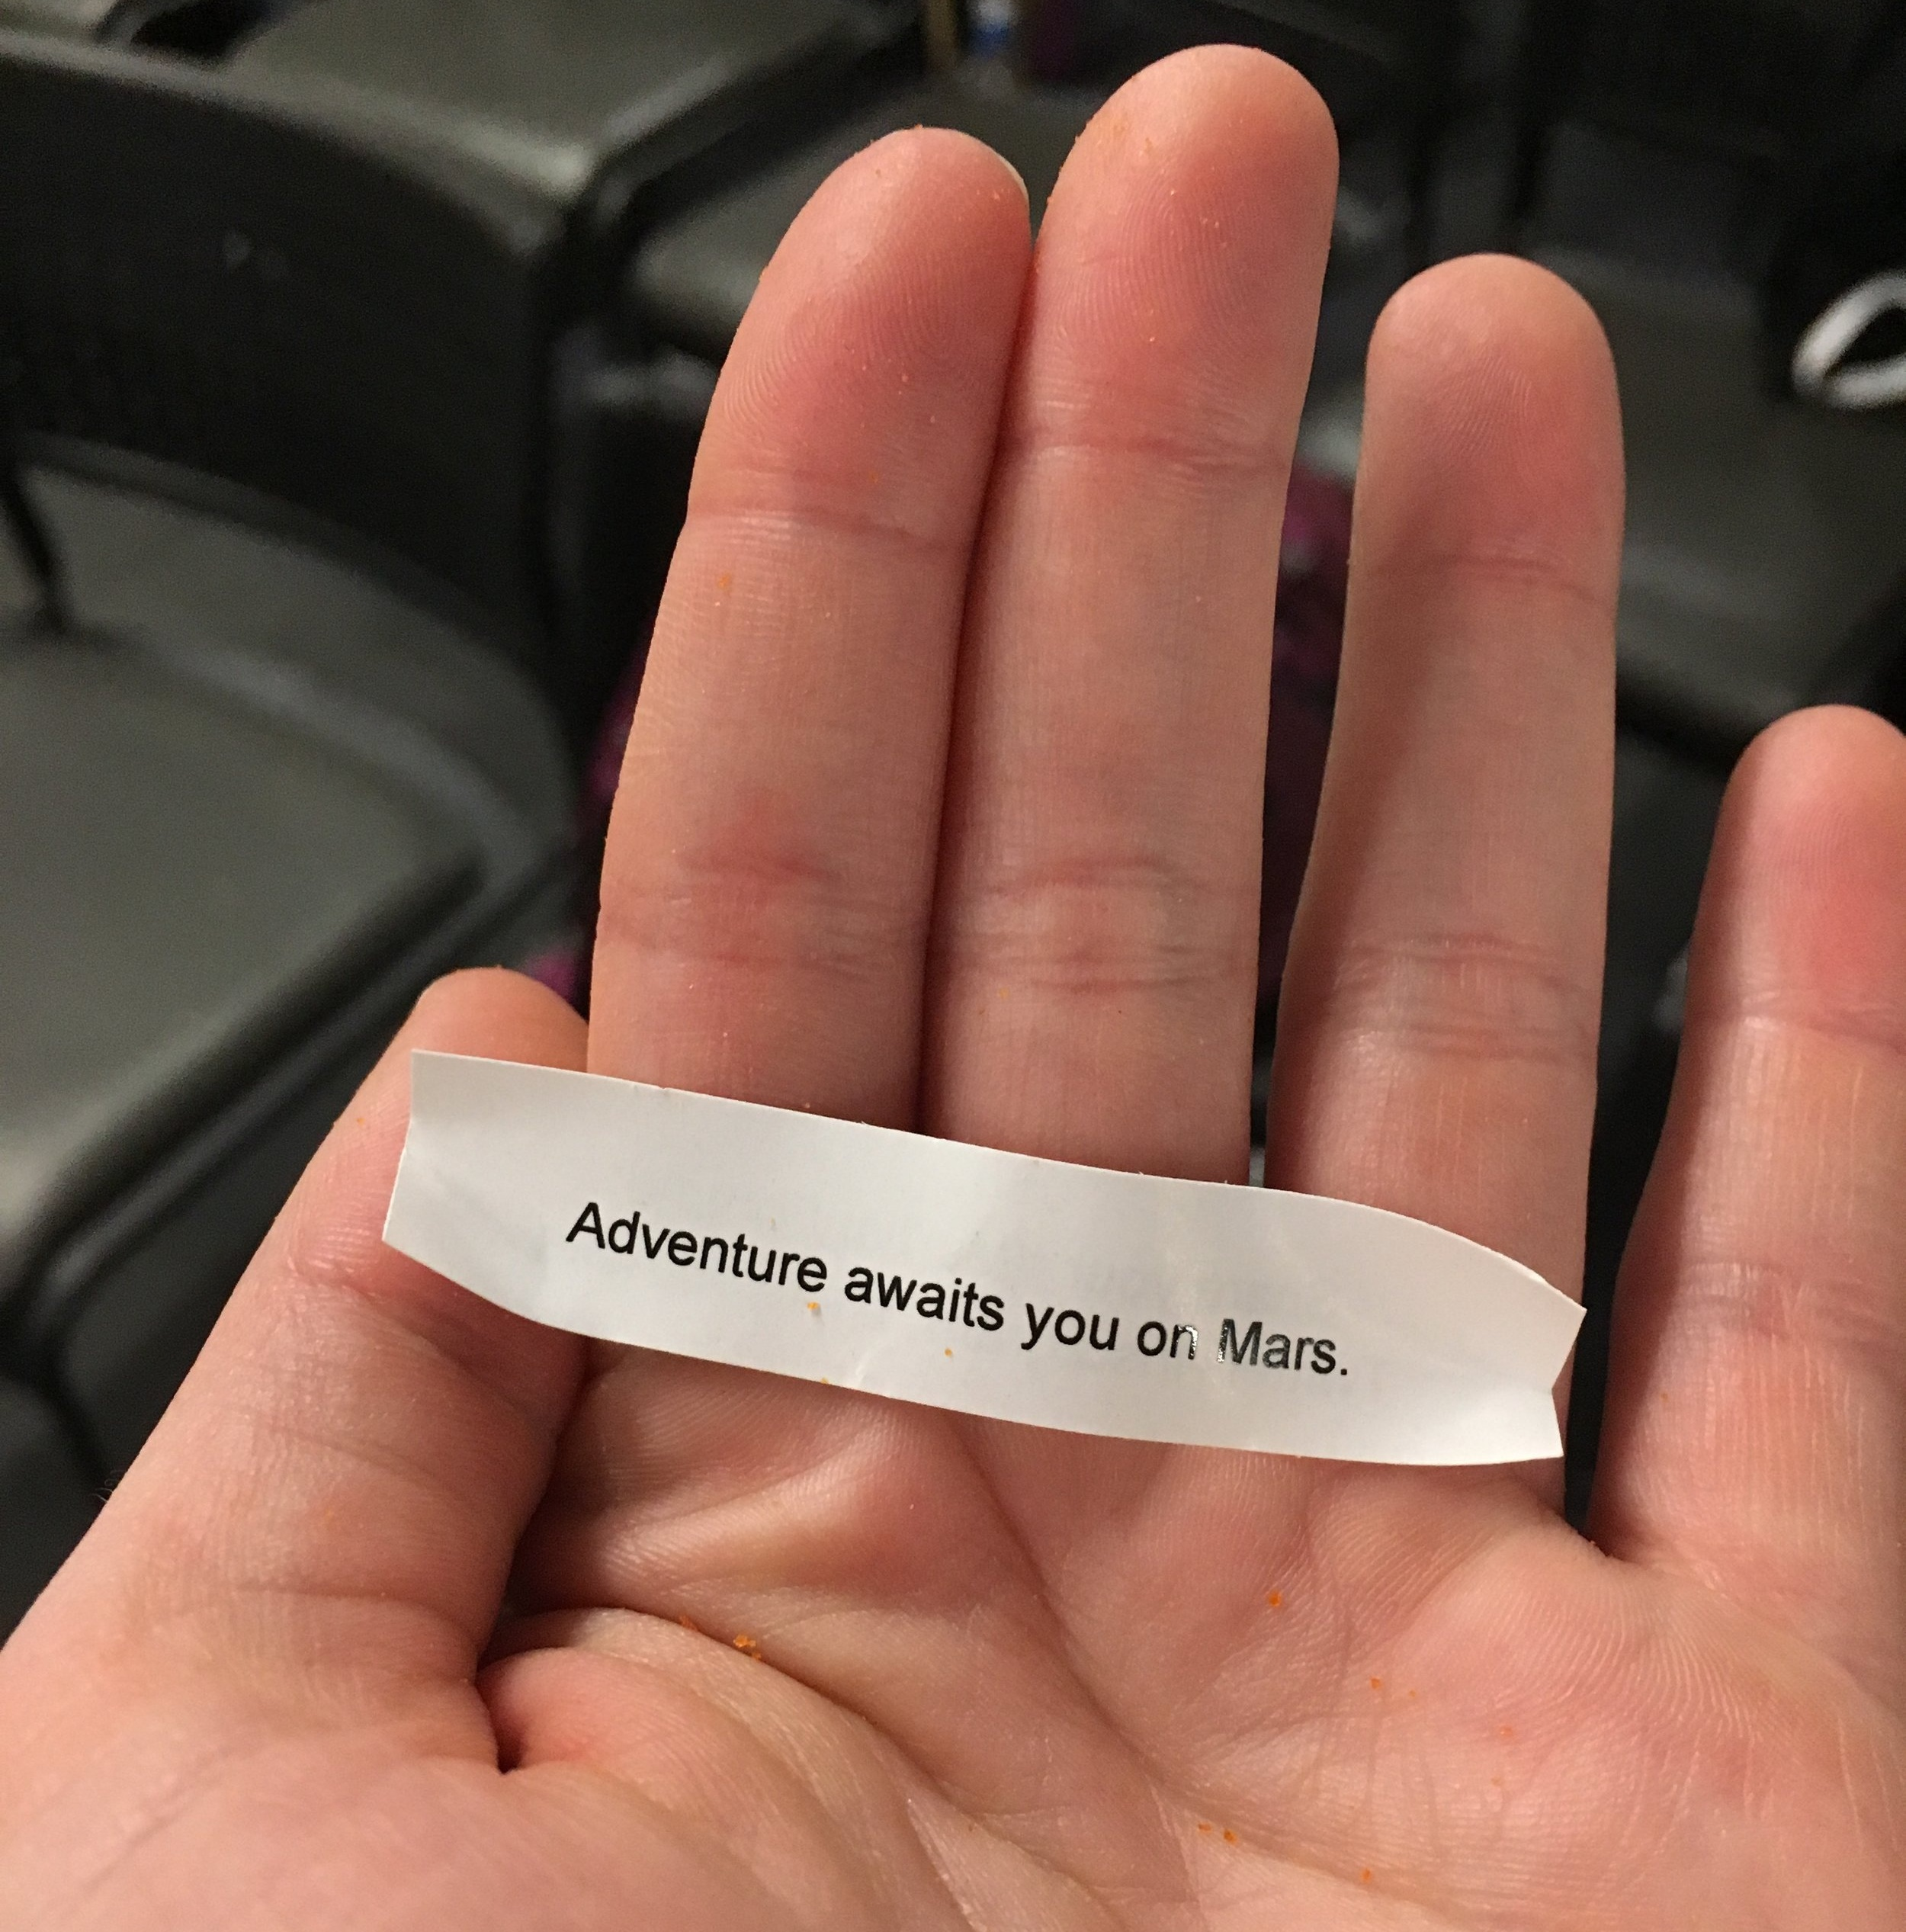 Conference organizer Dr. Tanya Harrison's martian fortune cookies reminded us that adventure, opportunity, and more await us the farther we go.